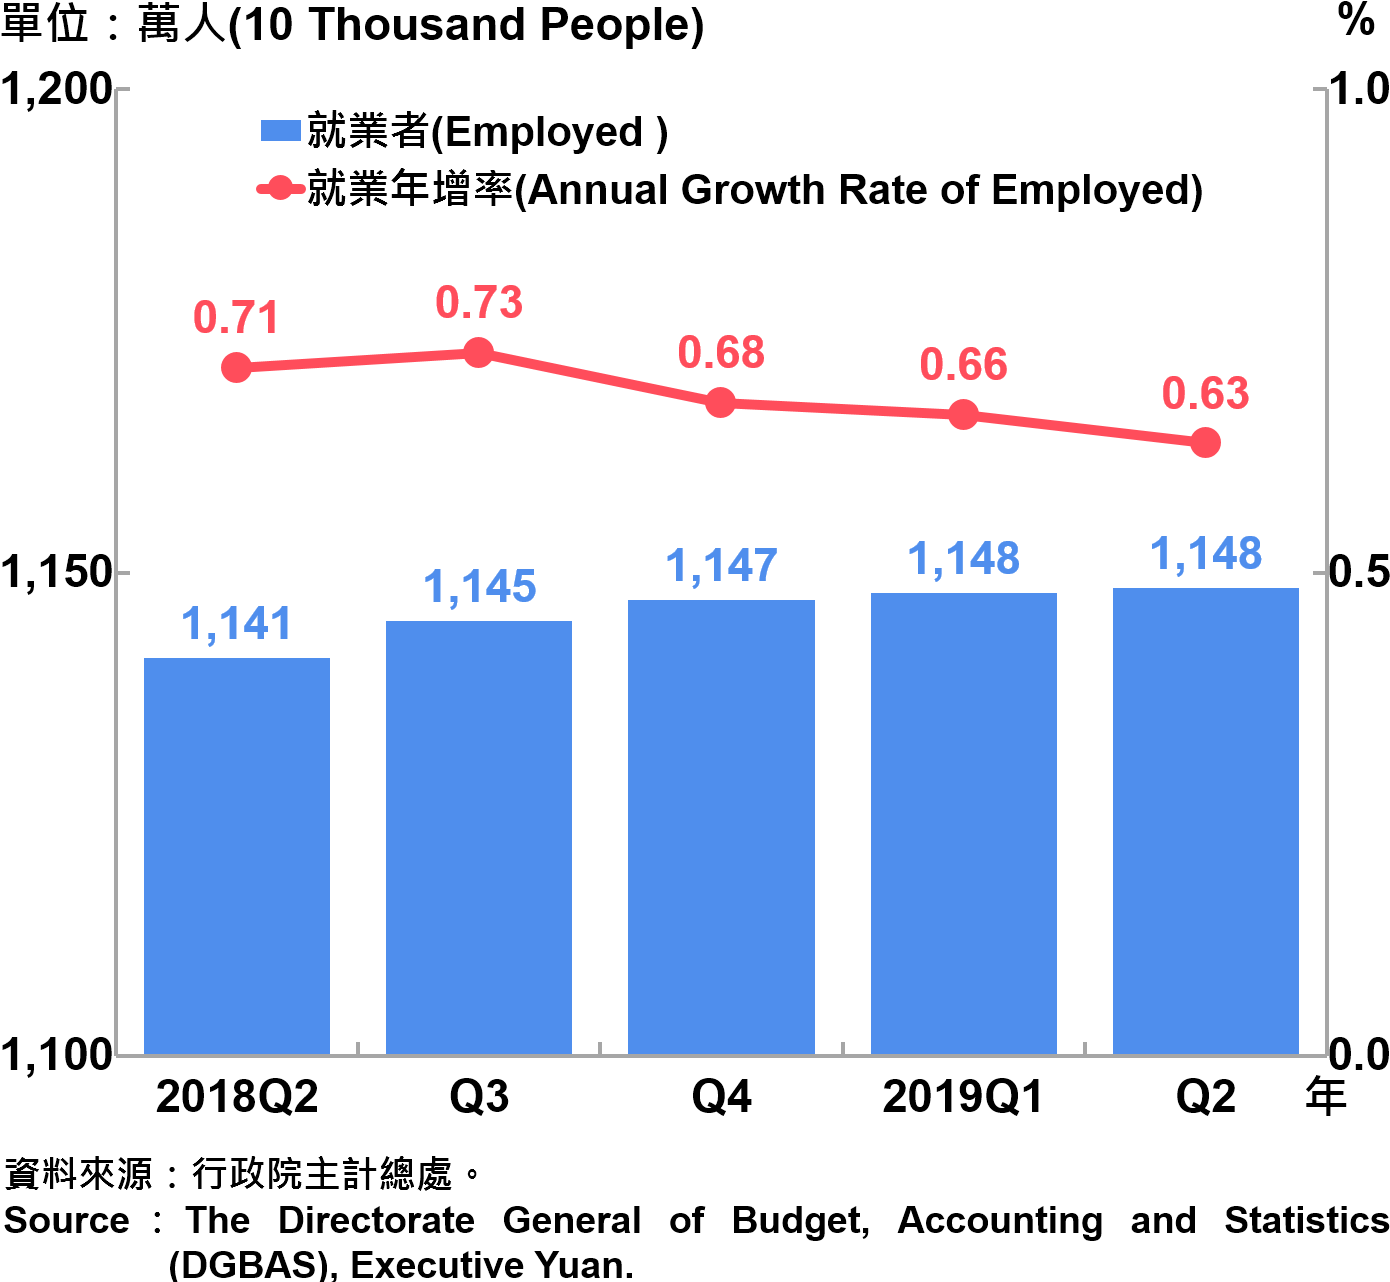 就業人數及就業成長率 Employed and Annual Growth Rate of Employed